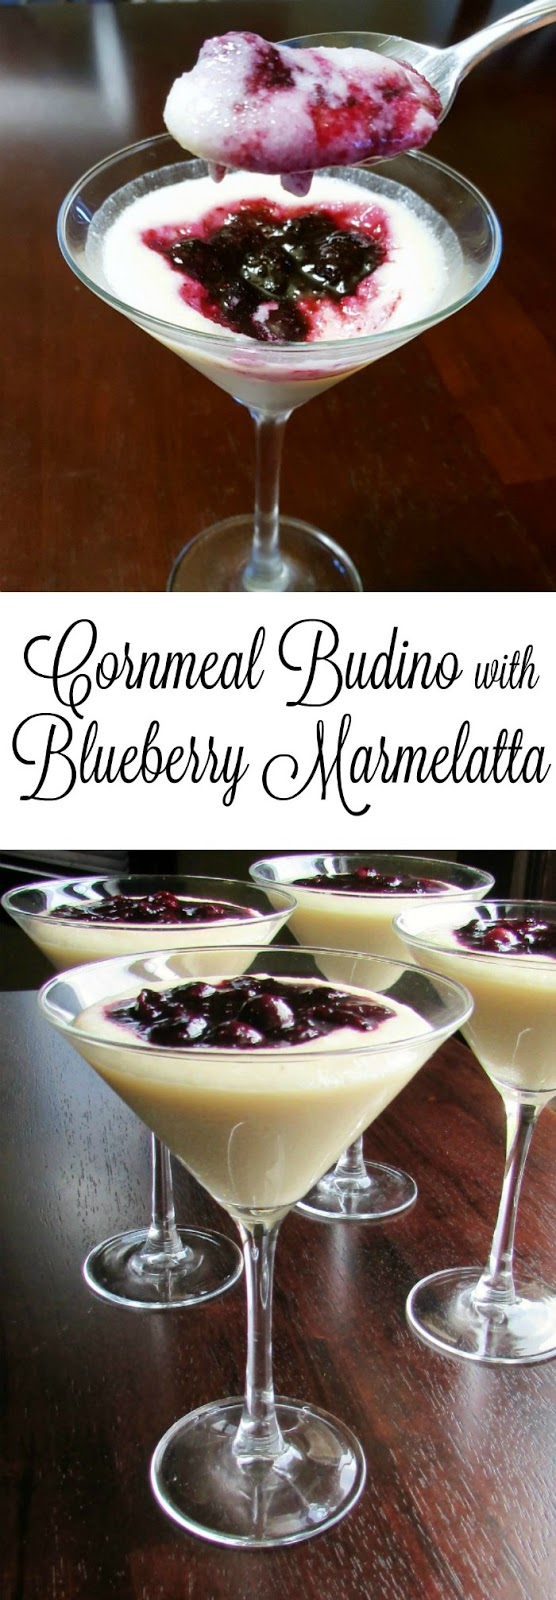 This simple dessert is perfect for al fresco dining.  It is elegant enough for a dinner party and simple enough for just because.  If you haven't tried cornmeal pudding yet, you really should!